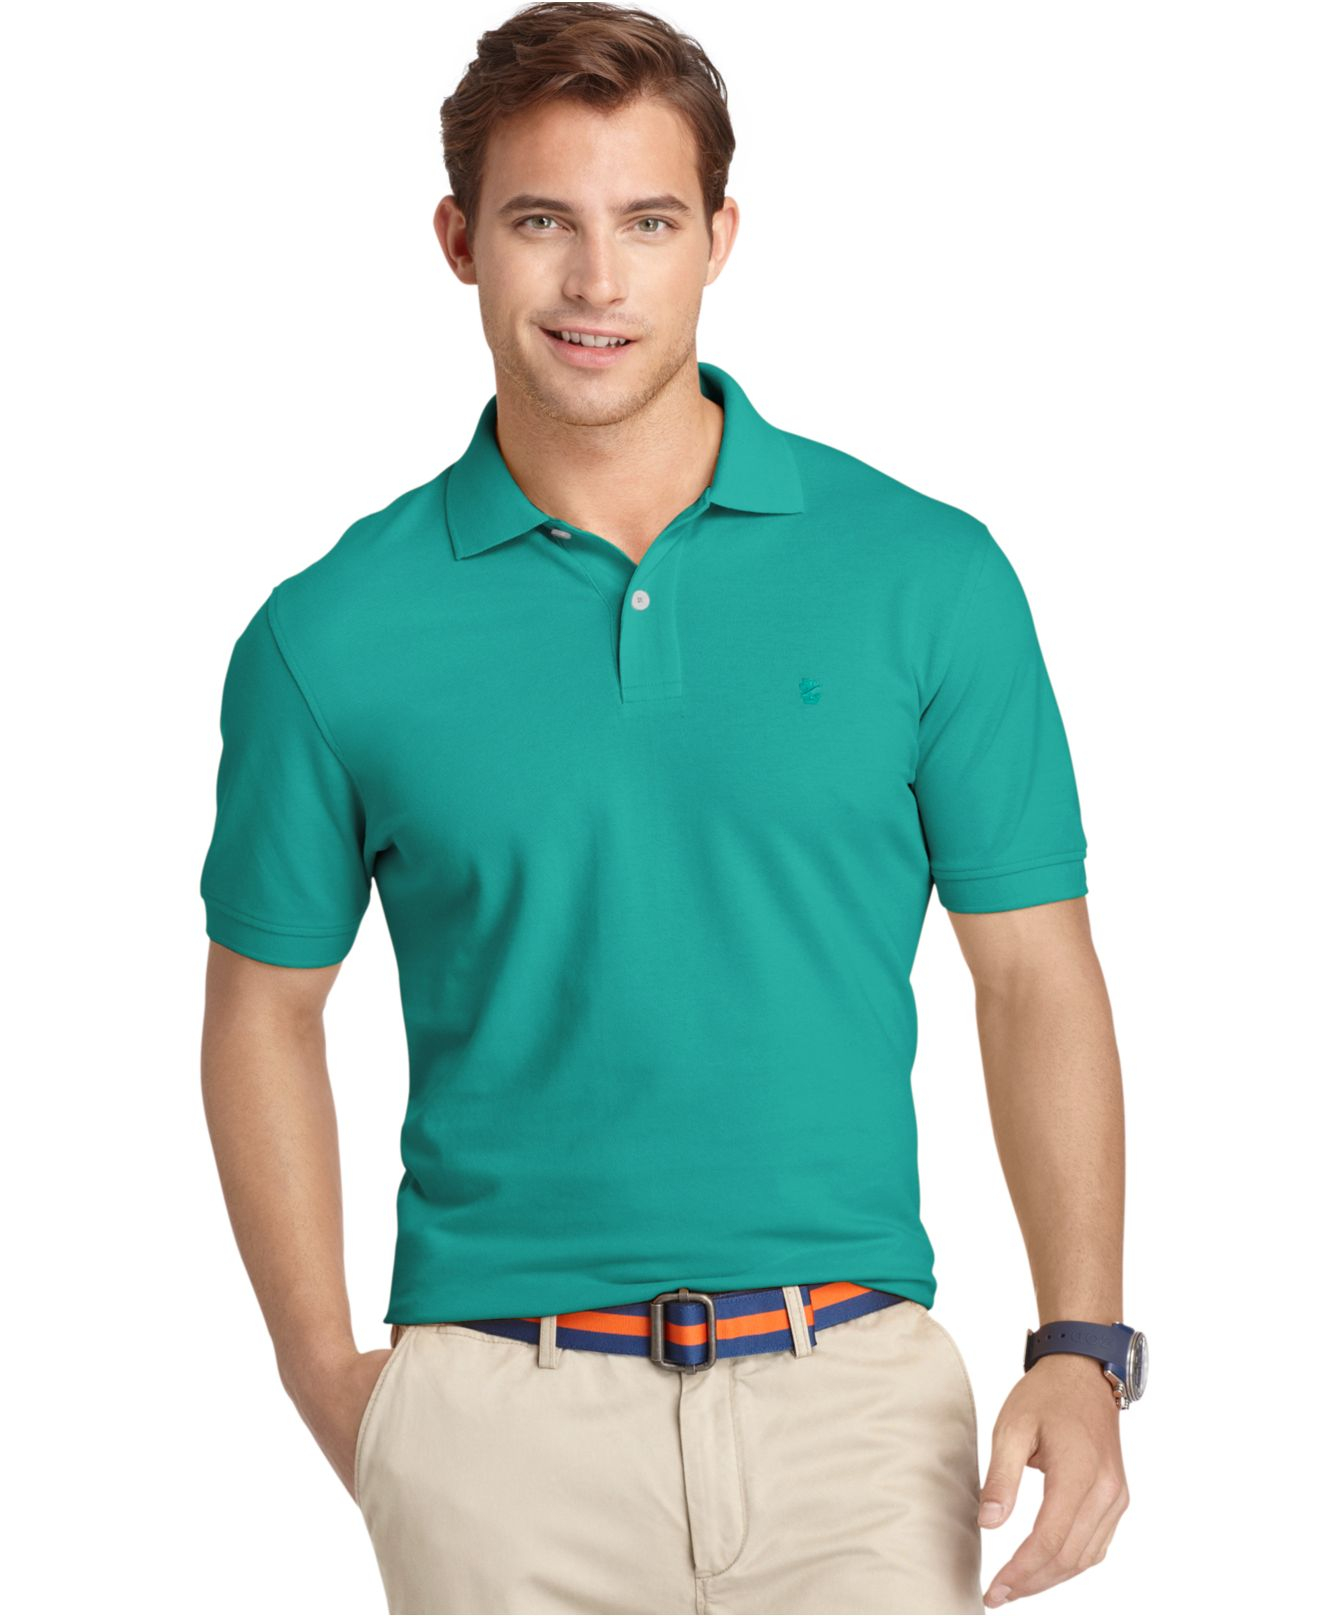 Izod premium pique polo shirt in teal for men green blue for Mens teal polo shirt